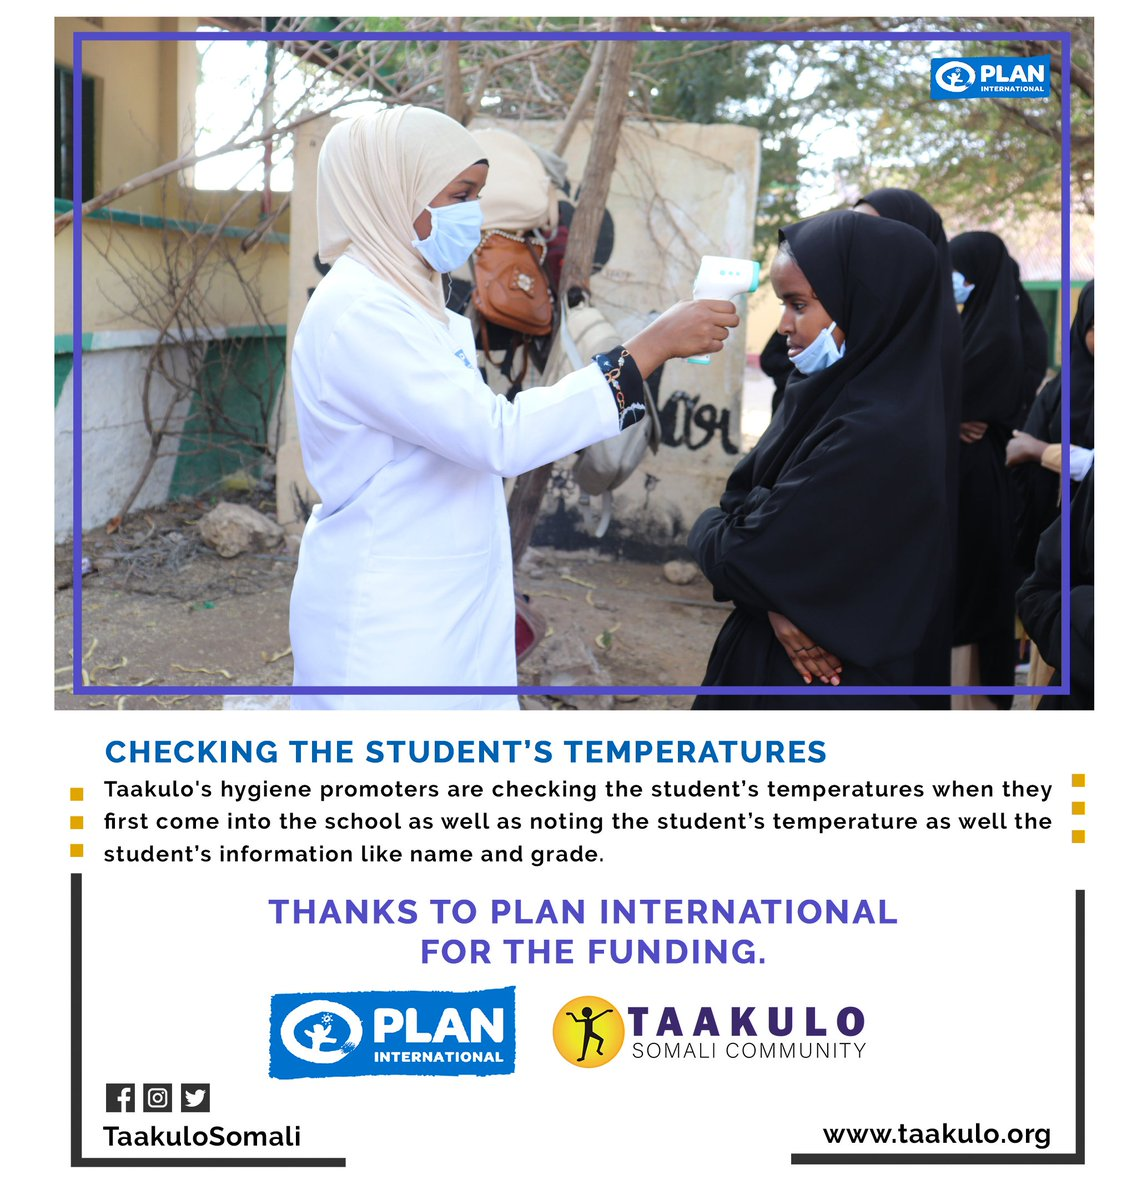 Taakulo hygiene promoters are checking the student's temperatures when they first come into the #school as well as noting the student's temperature. Thanks @PlanUK  for the funding.   #planinternation @decappeal #decappeal